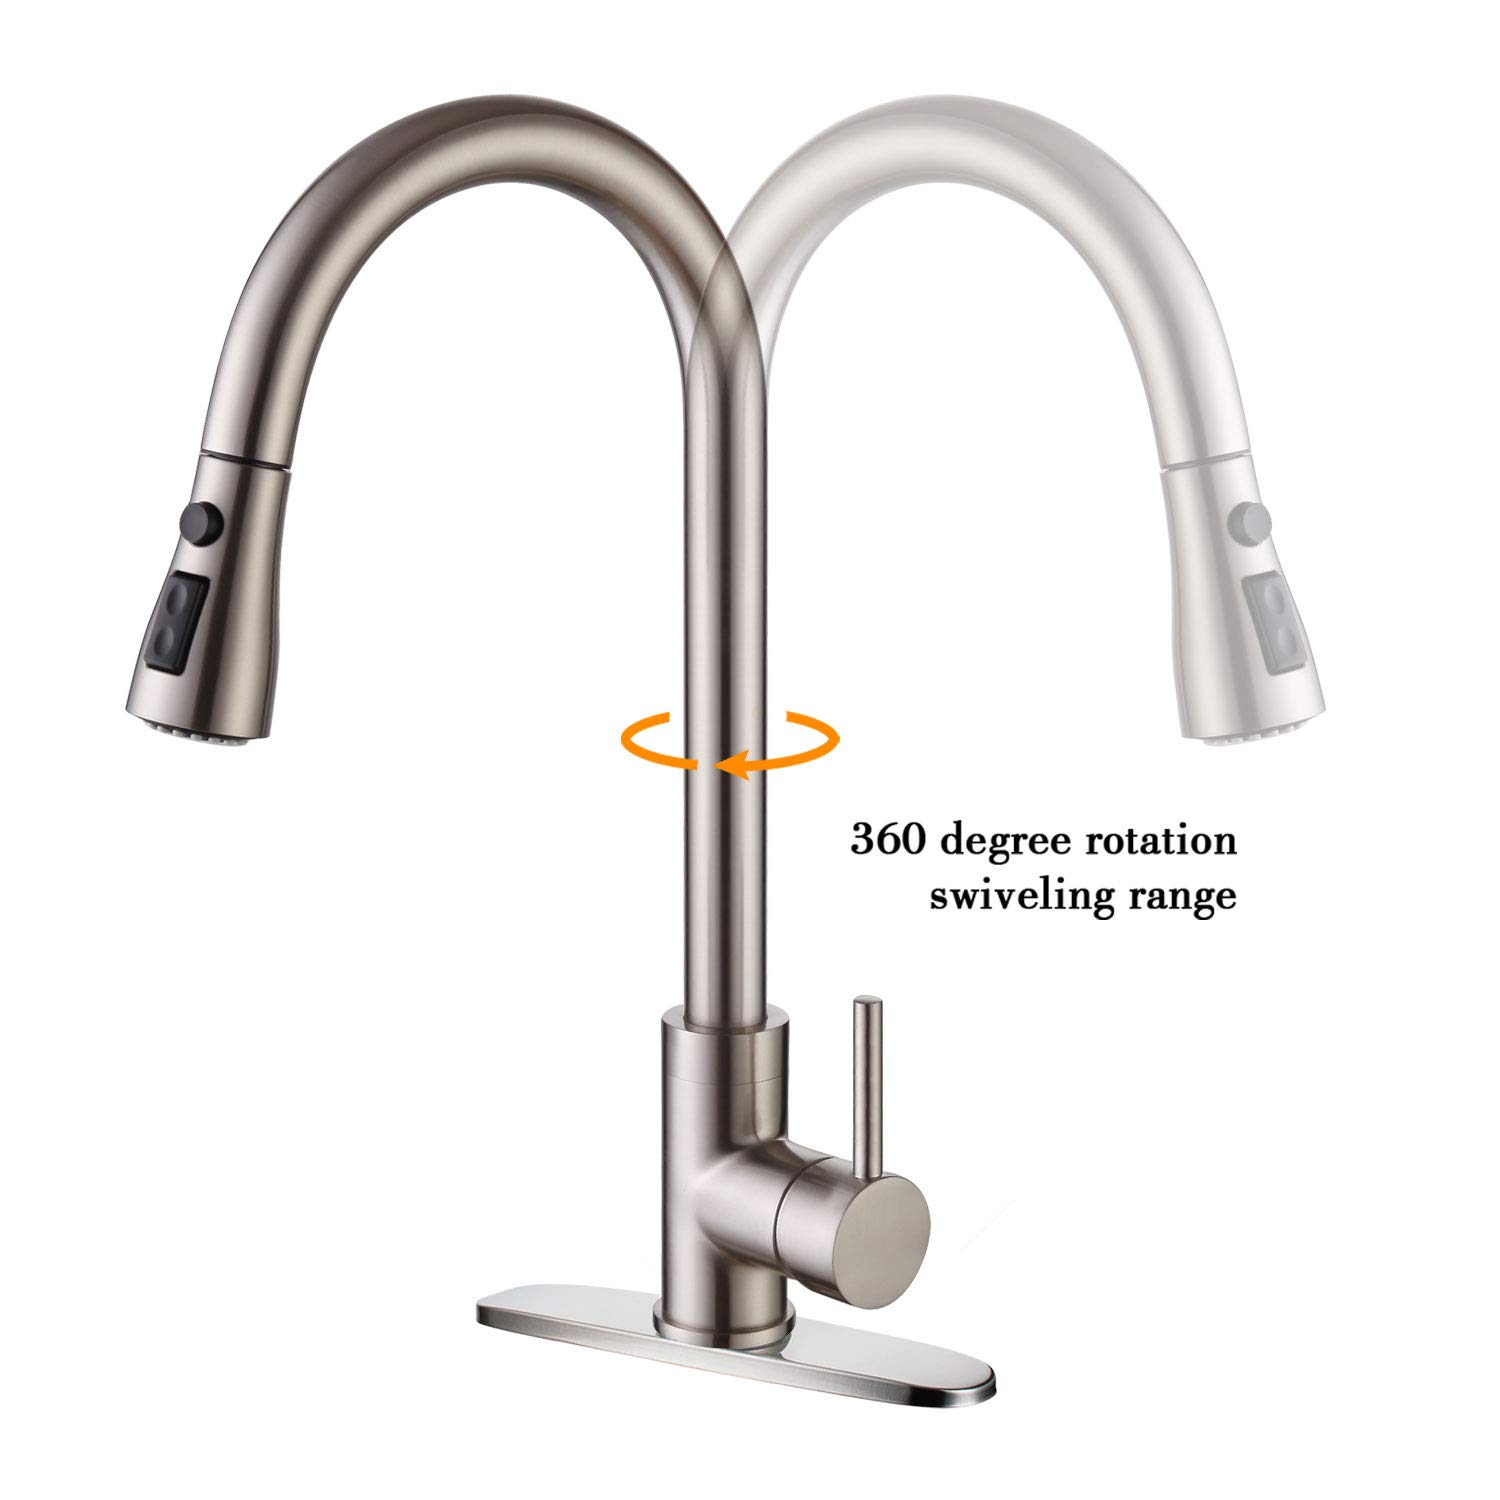 Moone Commercial Single Handle Kitchen Faucet Pull Down Sprayer Brass Body Pull Out Spray Kitchen Sink Faucets Stainless Steel Brushed Nickel by Moone (Image #8)